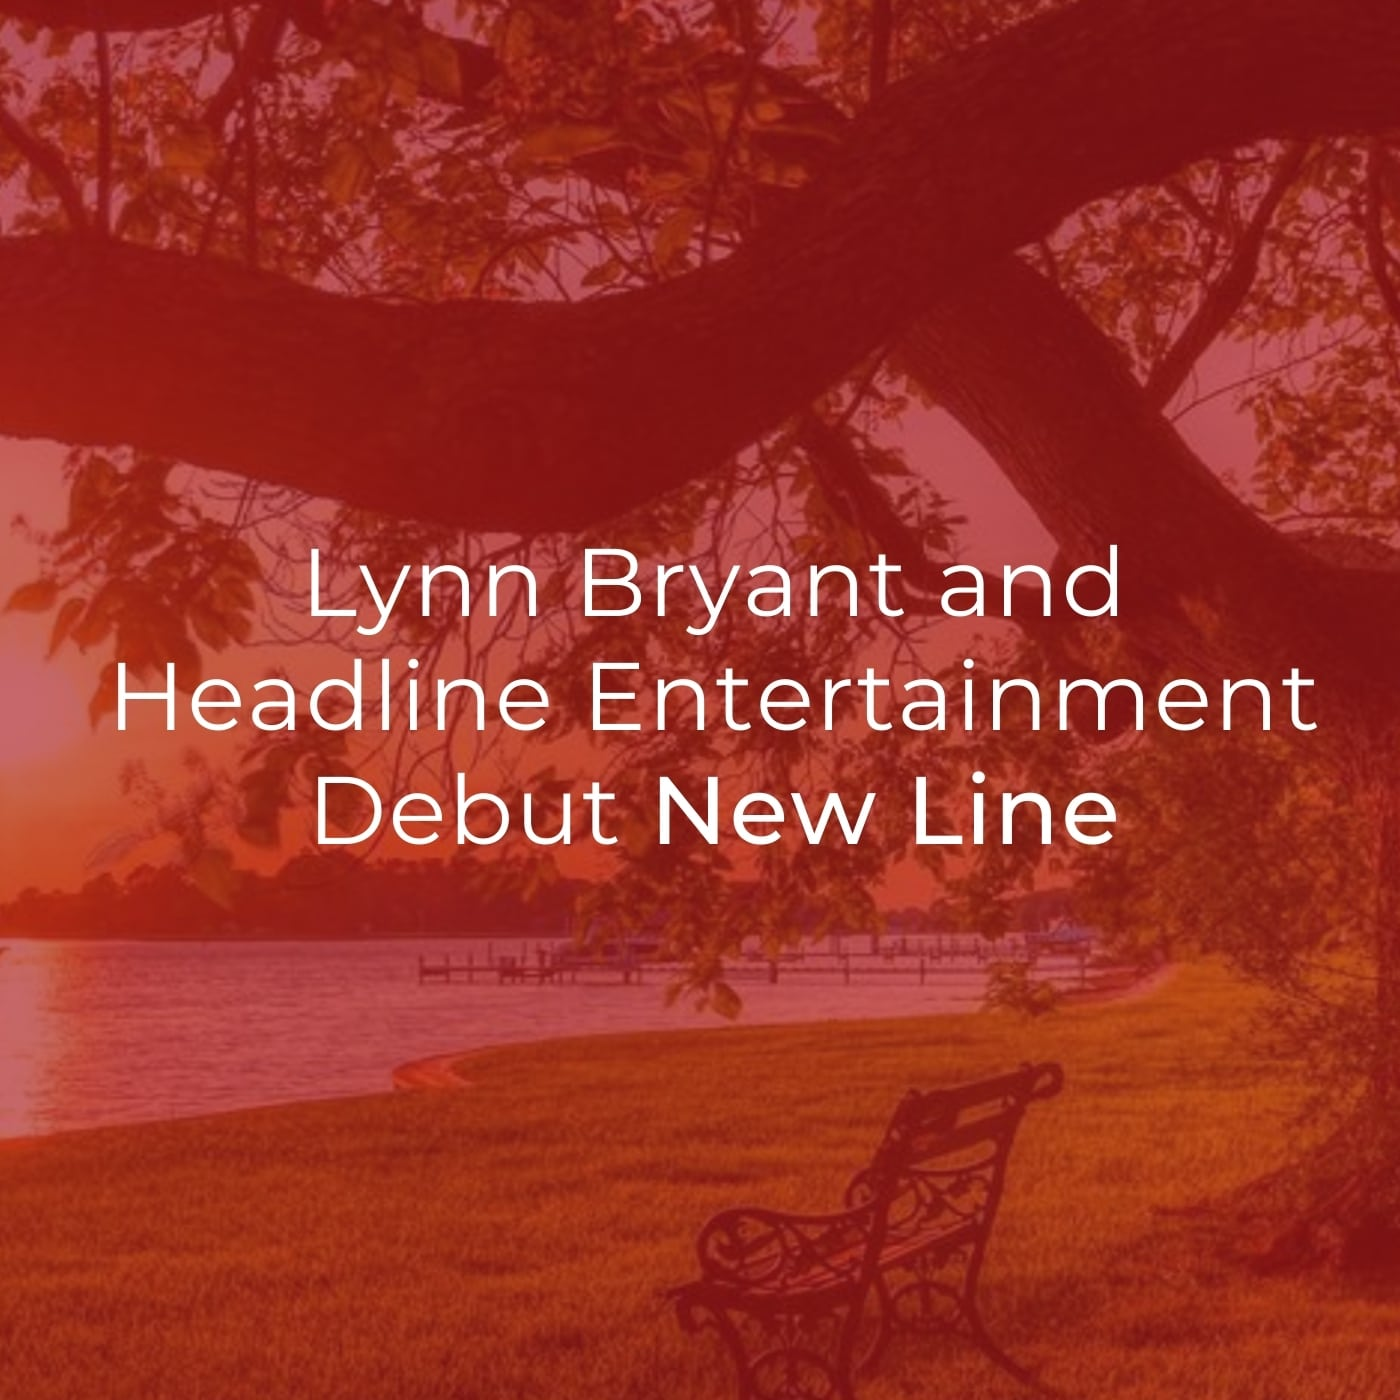 Lynn Bryant and Headline Entertainment Debut New Line